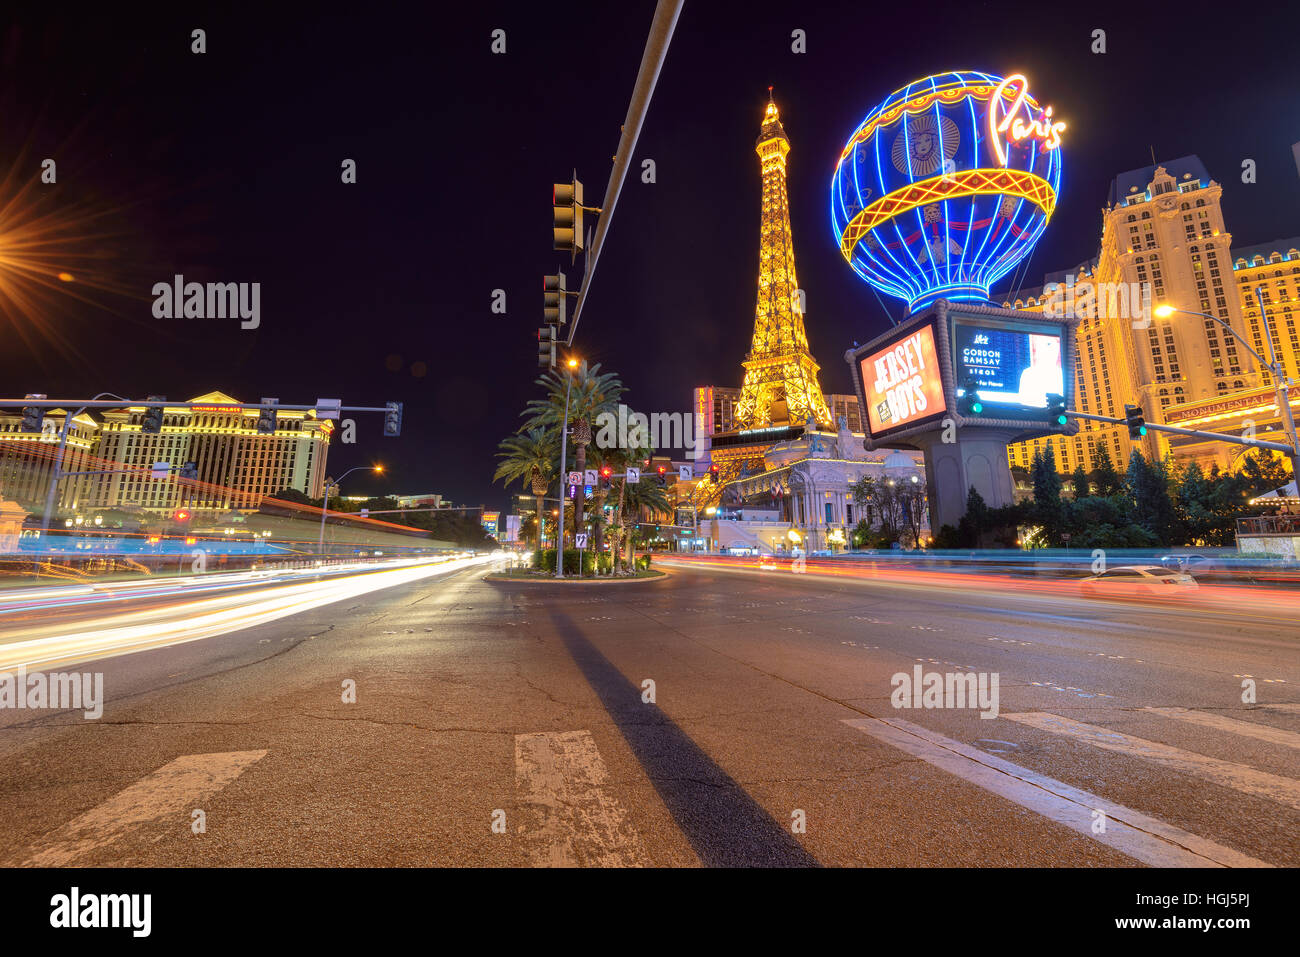 Las Vegas Strip. Stockbild